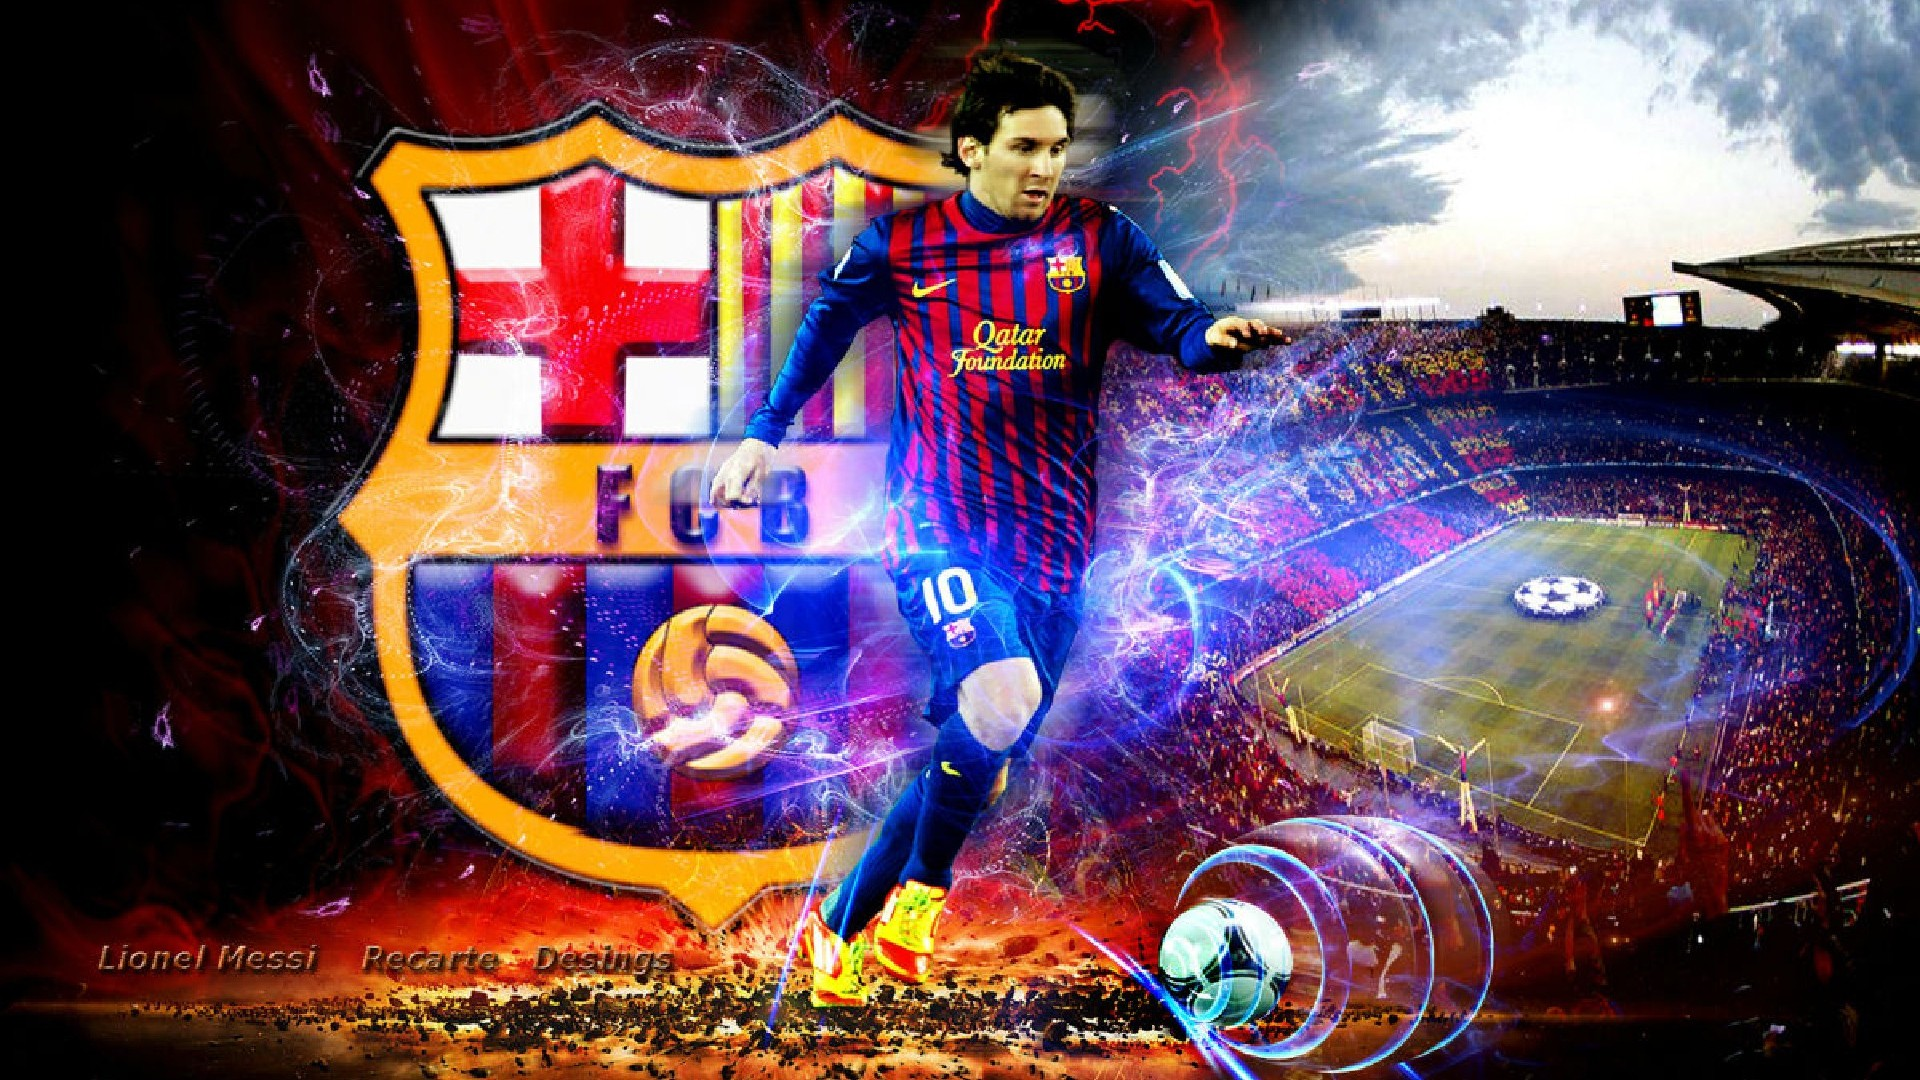 Lionel Messi  p HD Wallpapers  Wallpaper  1920x1080